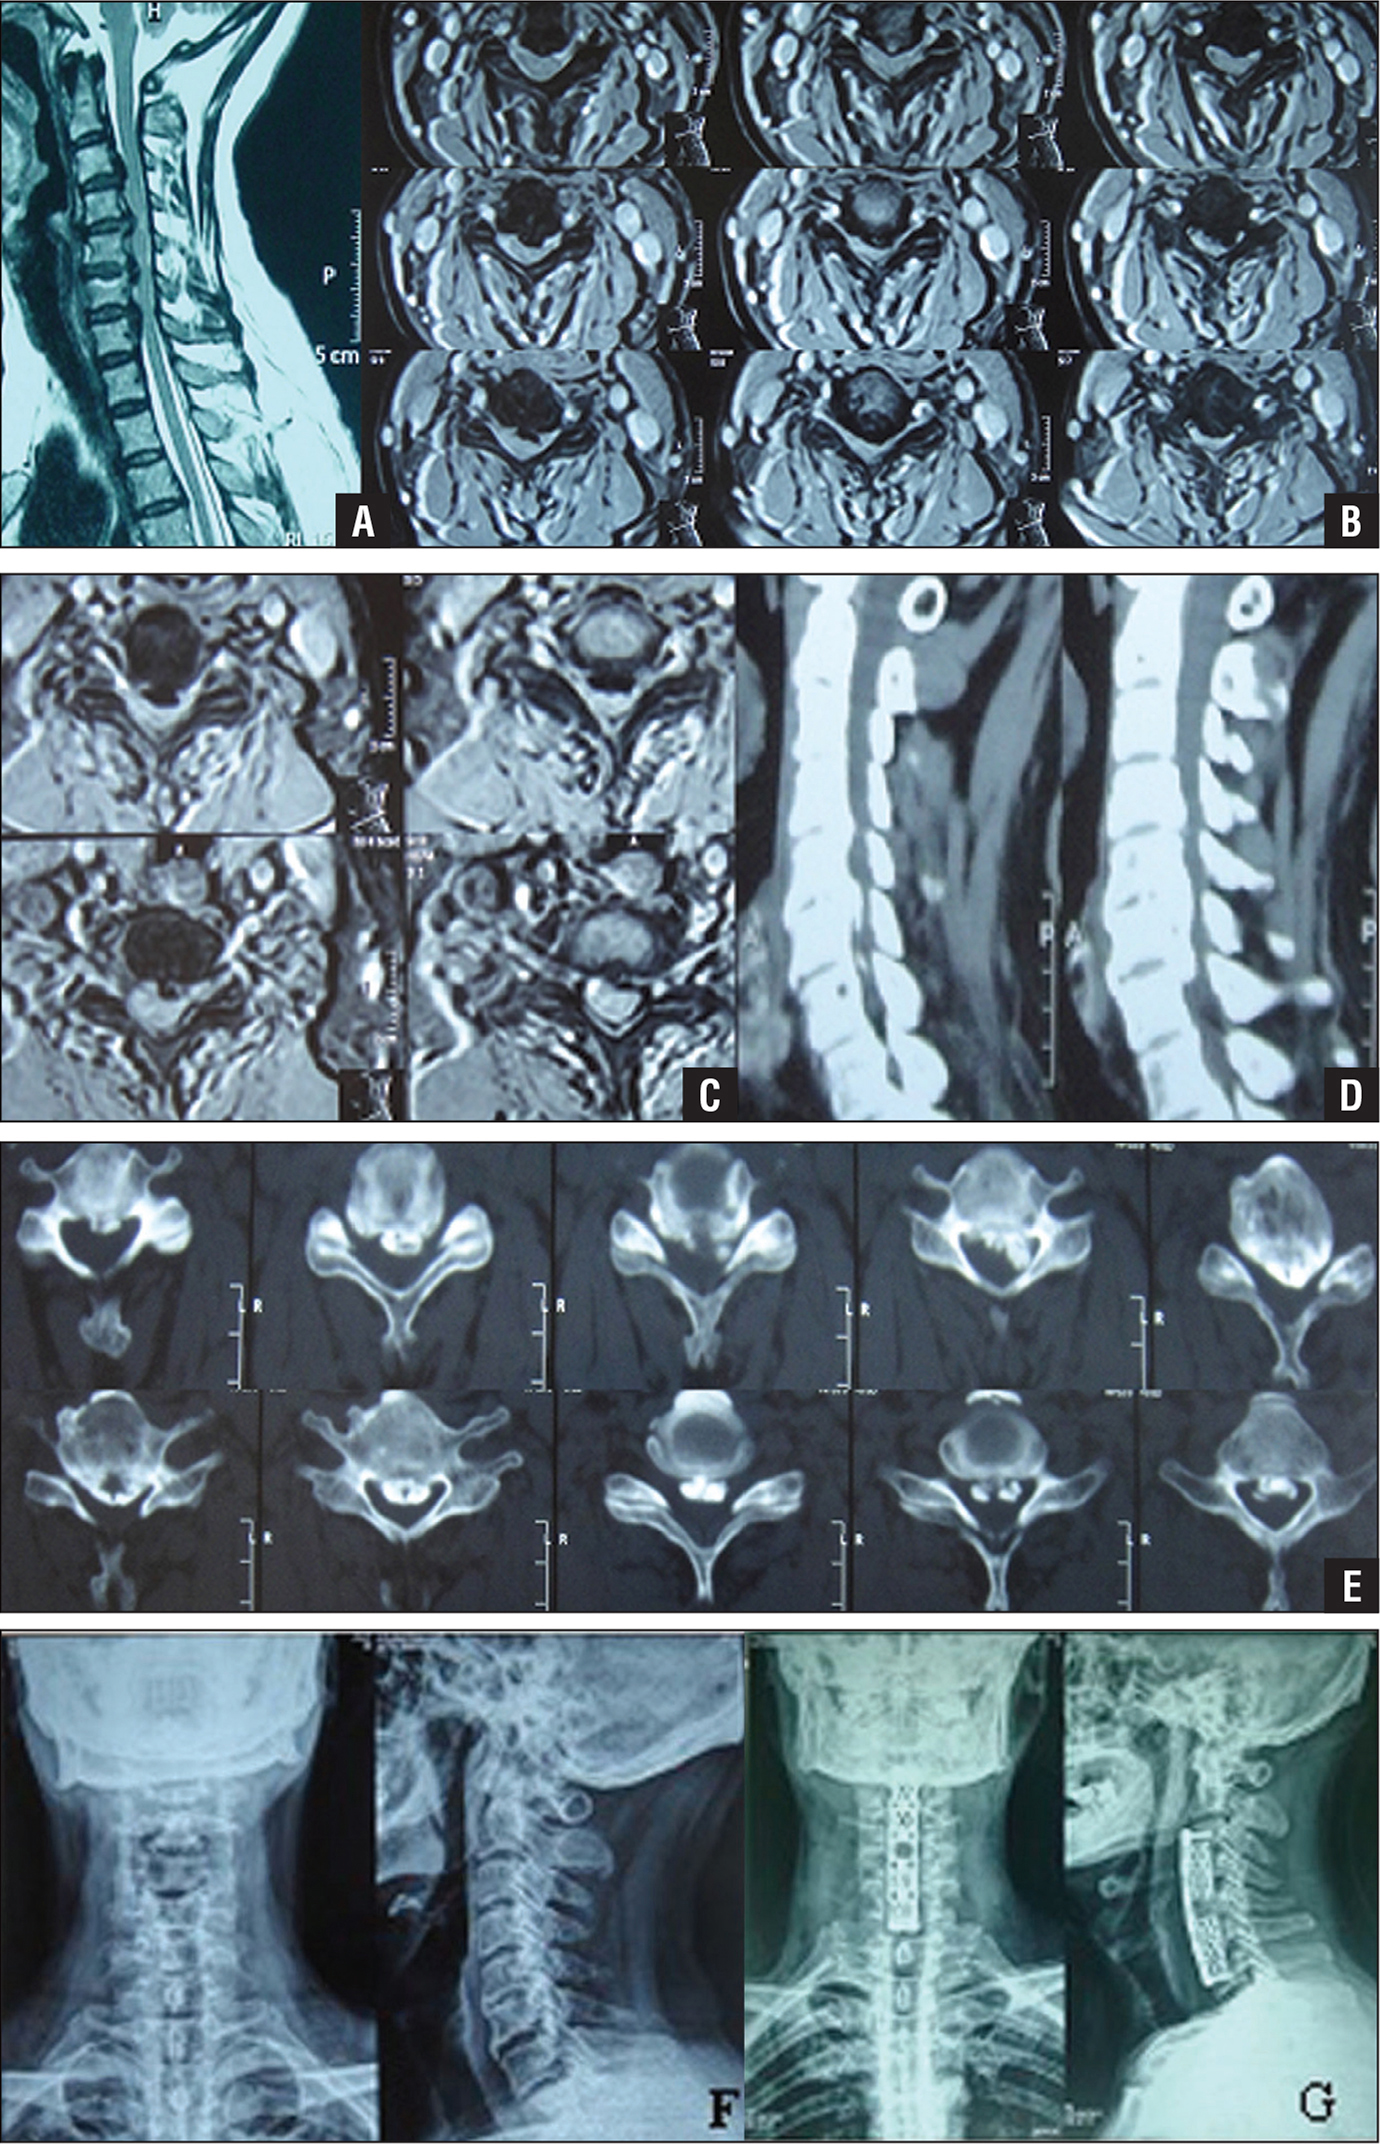 Radiologic images of a 53-year-old man with spinal cord compression as a result of disk hernia and ossification of the posterior longitudinal ligament with 4 segments treated with anterior segmental subtotal corpectomy and reconstruction with a titanium cage. The Japanese Orthopedic Association score improved from 8 preoperatively to 15 postoperatively. Sagittal magnetic resonance imaging of the cervical spine showing grade 3 compression as a result of ossification of the posterior longitudinal ligament and maximum compression at the disk level (A). Axial magnetic resonance imaging scanograms showing disk hernias at C3–C4 and C4–C5 (B) and C5–C6 and C6–C7 (C). Sagittal 3-dimensional computed tomography scans showing segmental-type ossification of the posterior longitudinal ligament from C3 to C7 (D). Axial computed tomography scanograms showing ossified ligaments with different shapes (E). Preoperative (F) and postoperative (G) radiographs showing anterior segmental subtotal corpectomy and reconstruction with a titanium cage.